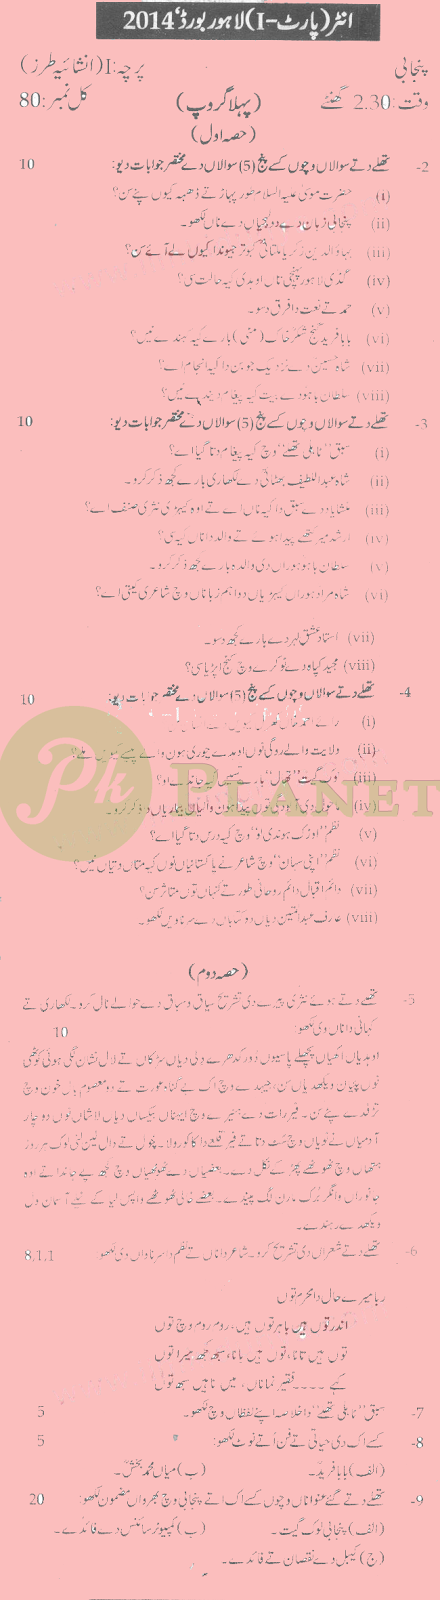 Past Papers of Punjabi Inter part 1 Lahore Board 2014